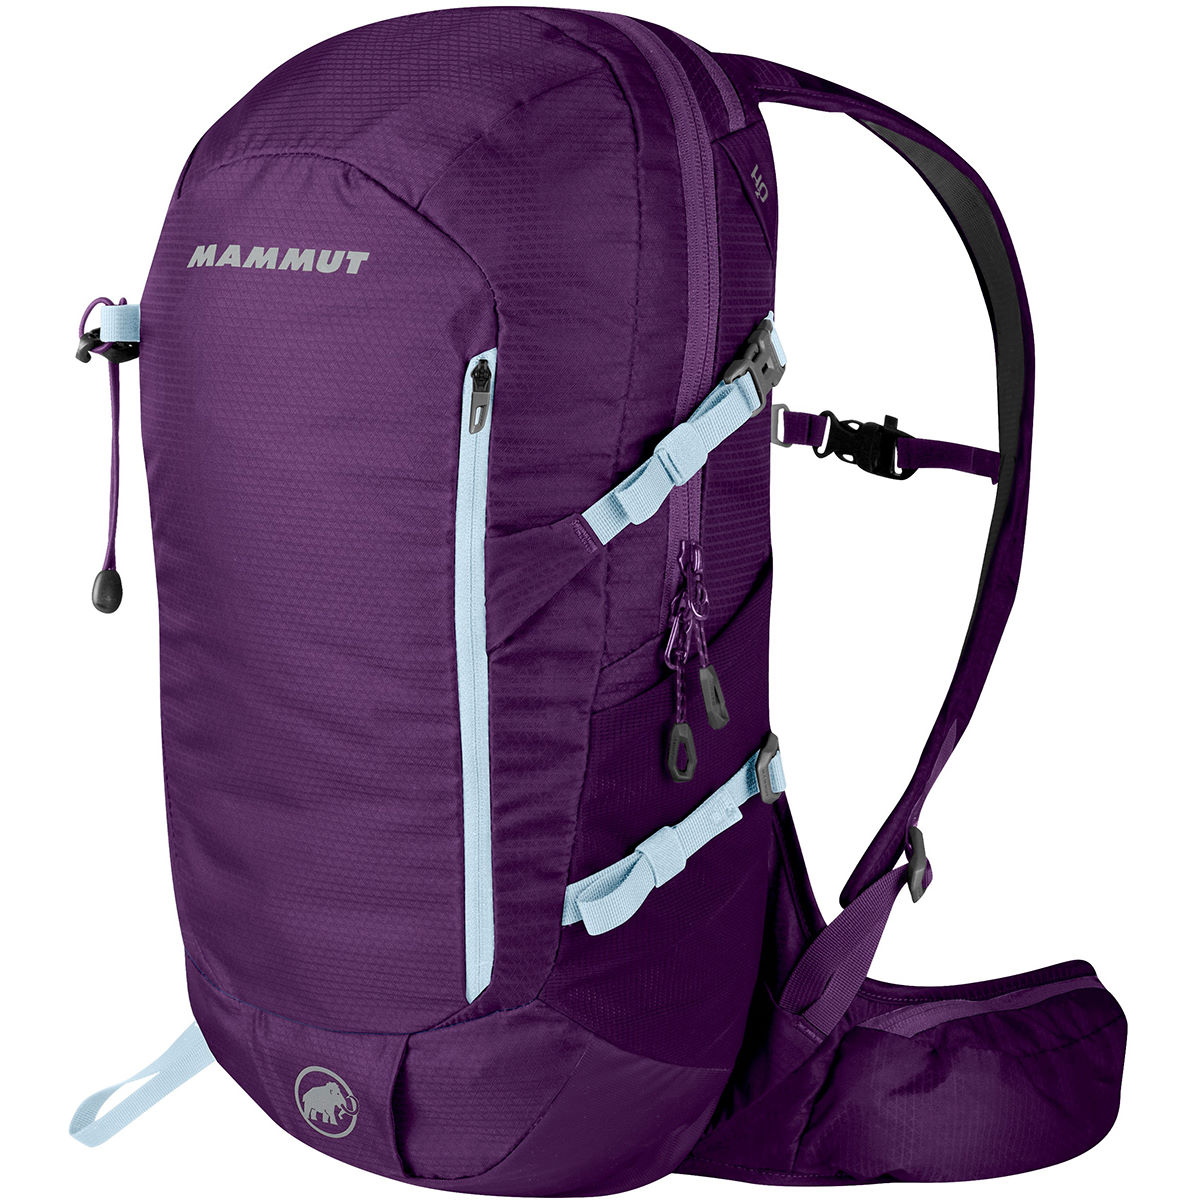 mammut Mammut Lithium Speed 20L Rucksack   Hiking Bags